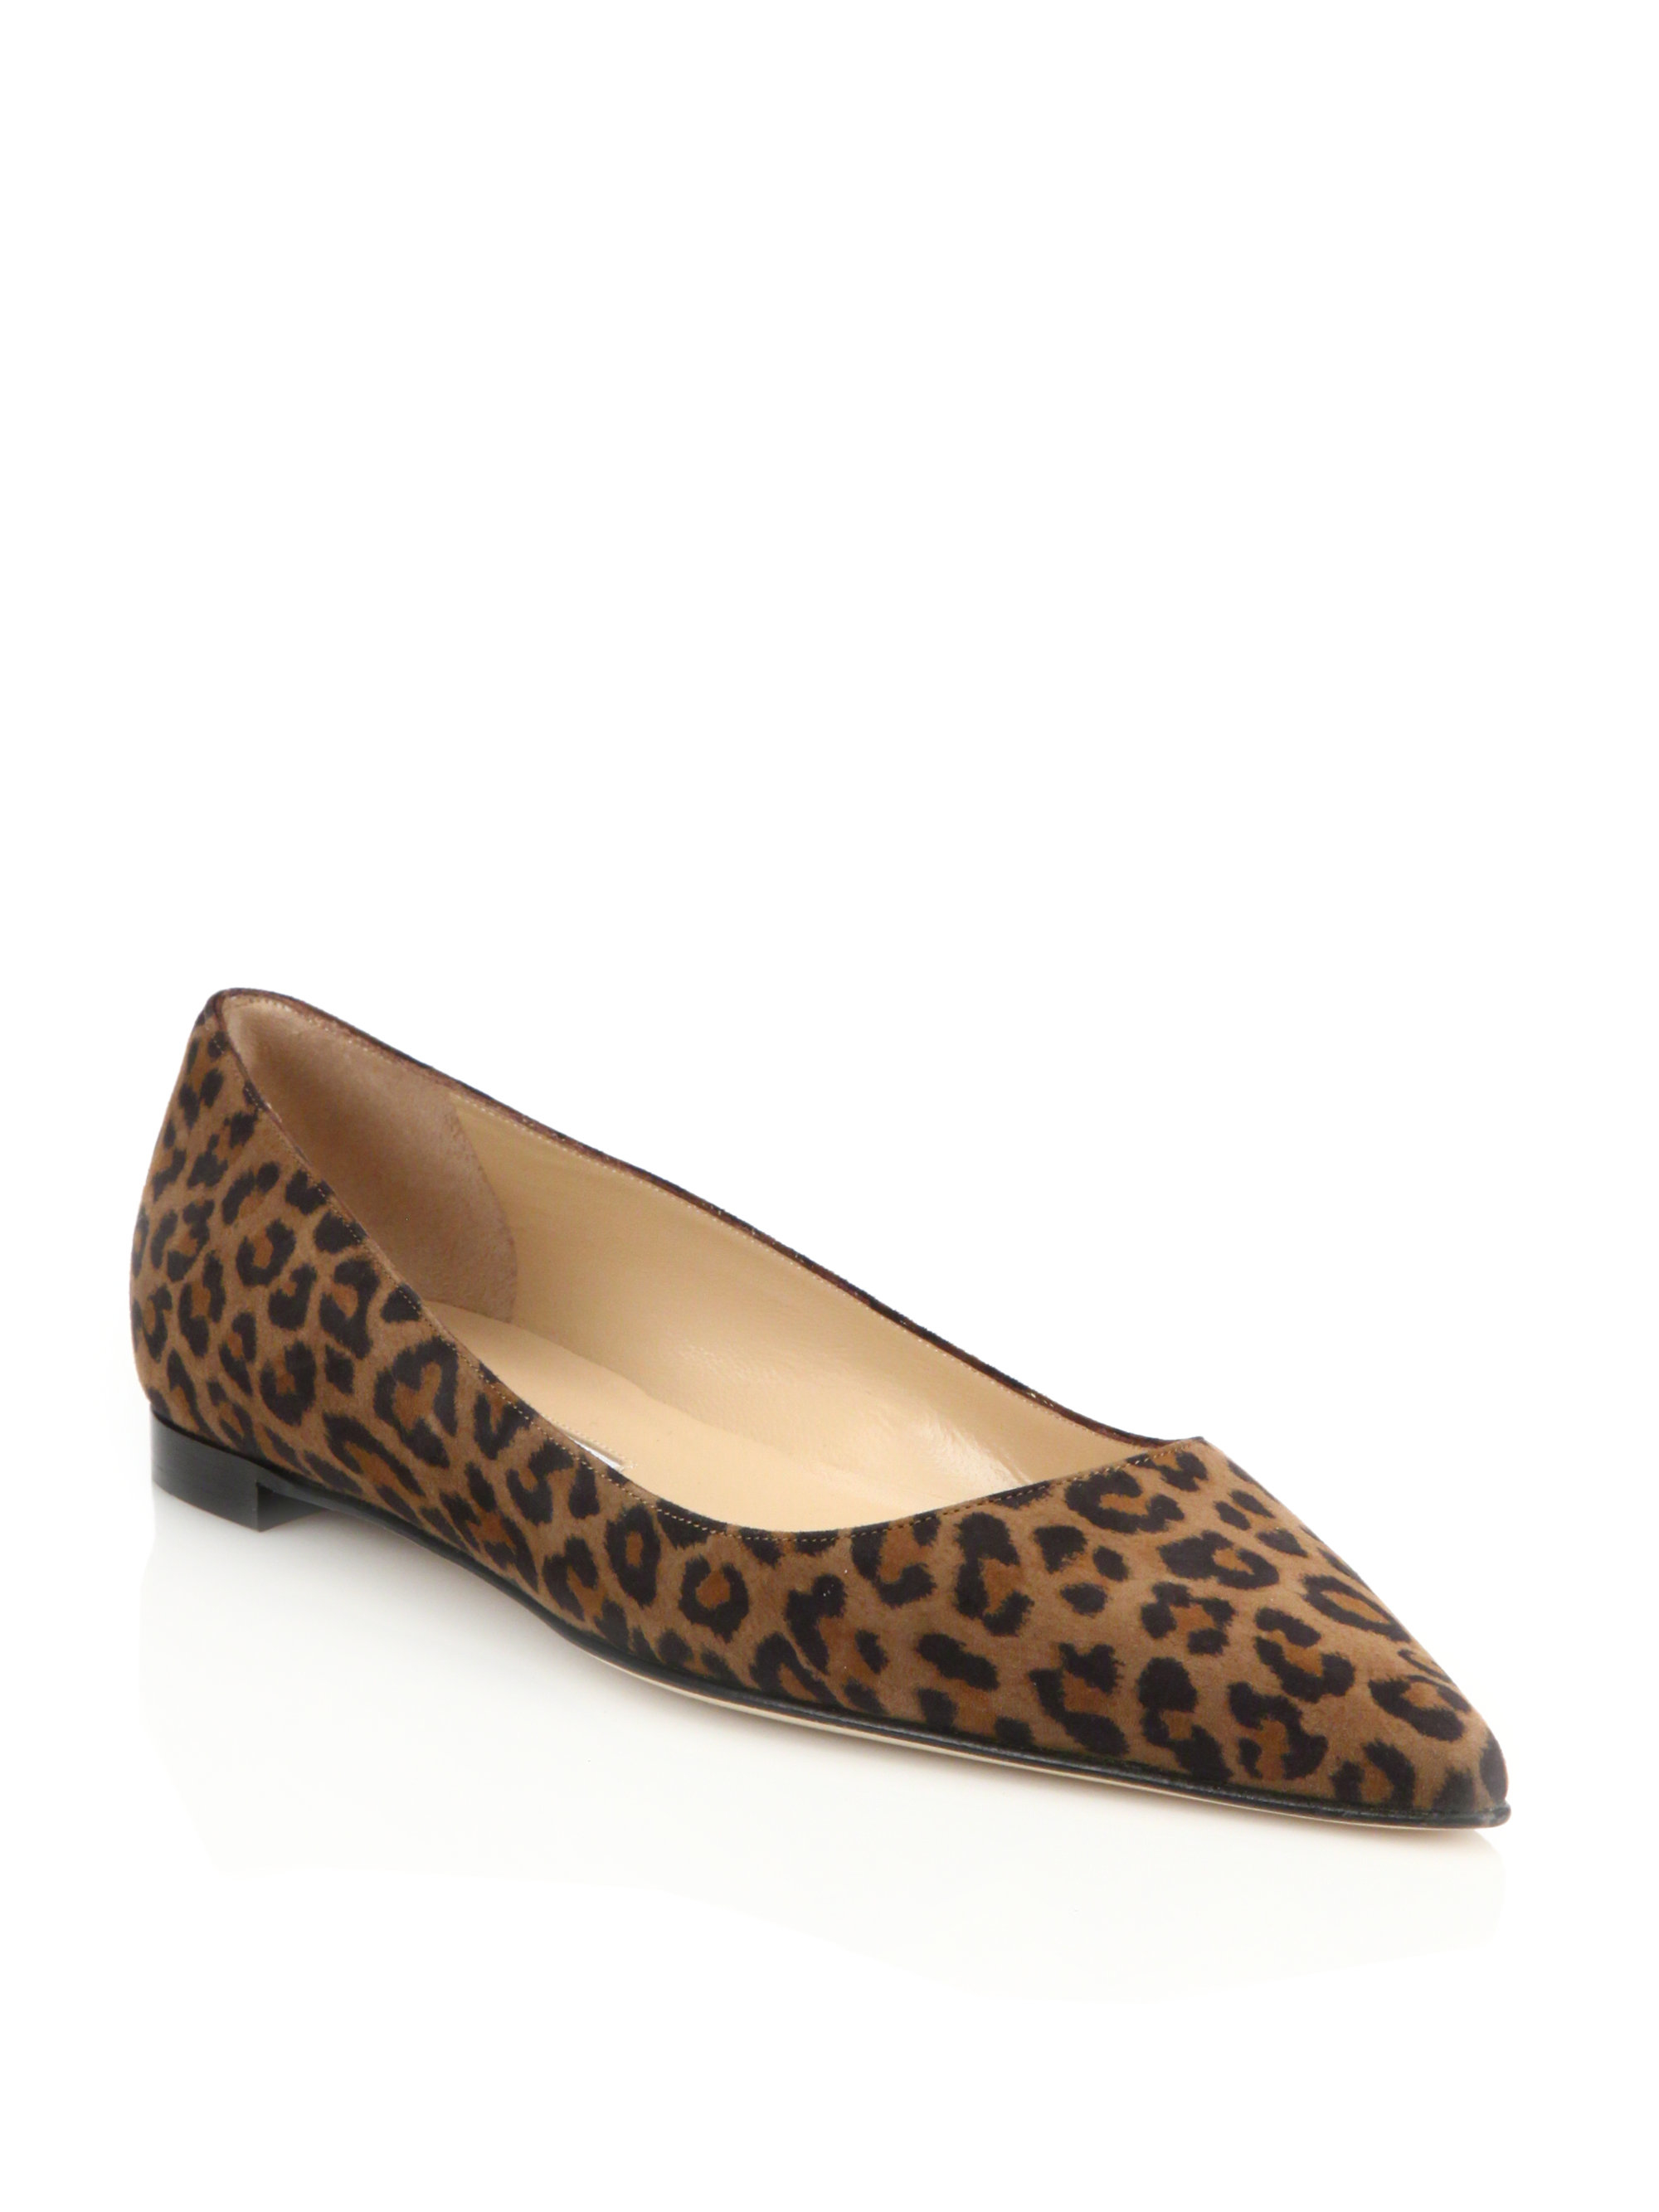 Find great deals on eBay for leopard flat. Shop with confidence.